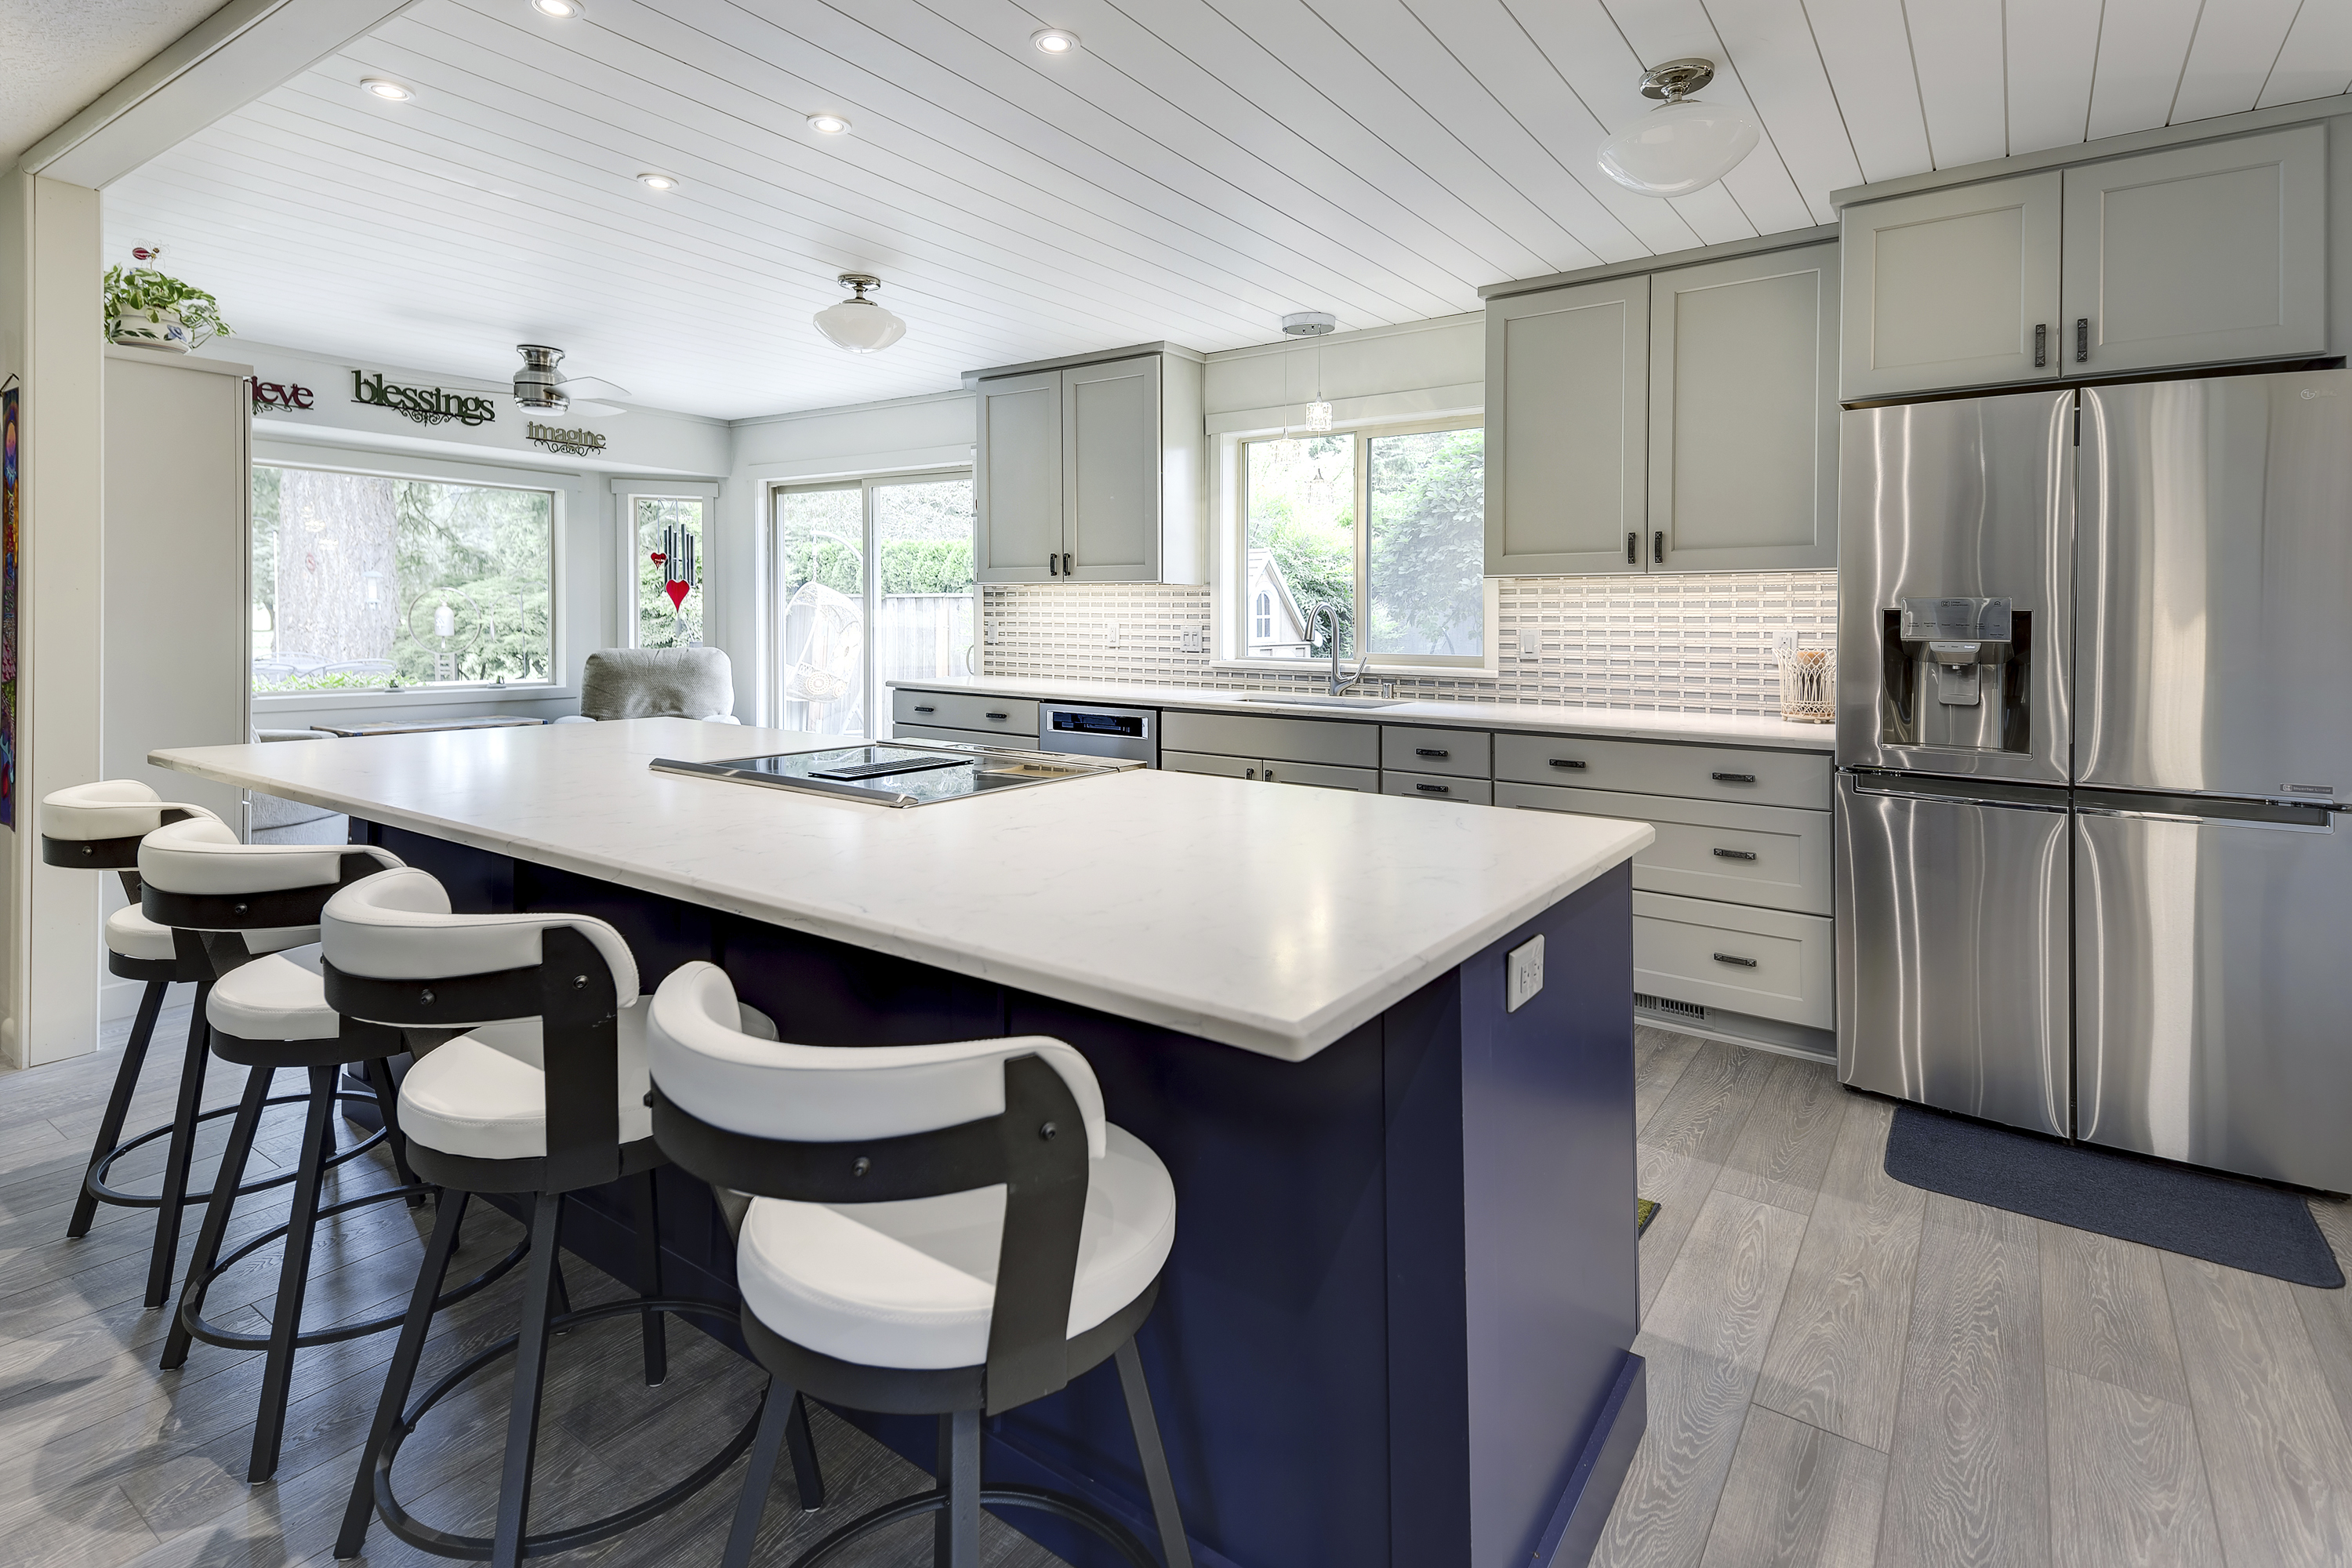 Ash Greige And Indigo Blue Beachy Kitchen Cabinets Dewils Custom Cabinetry